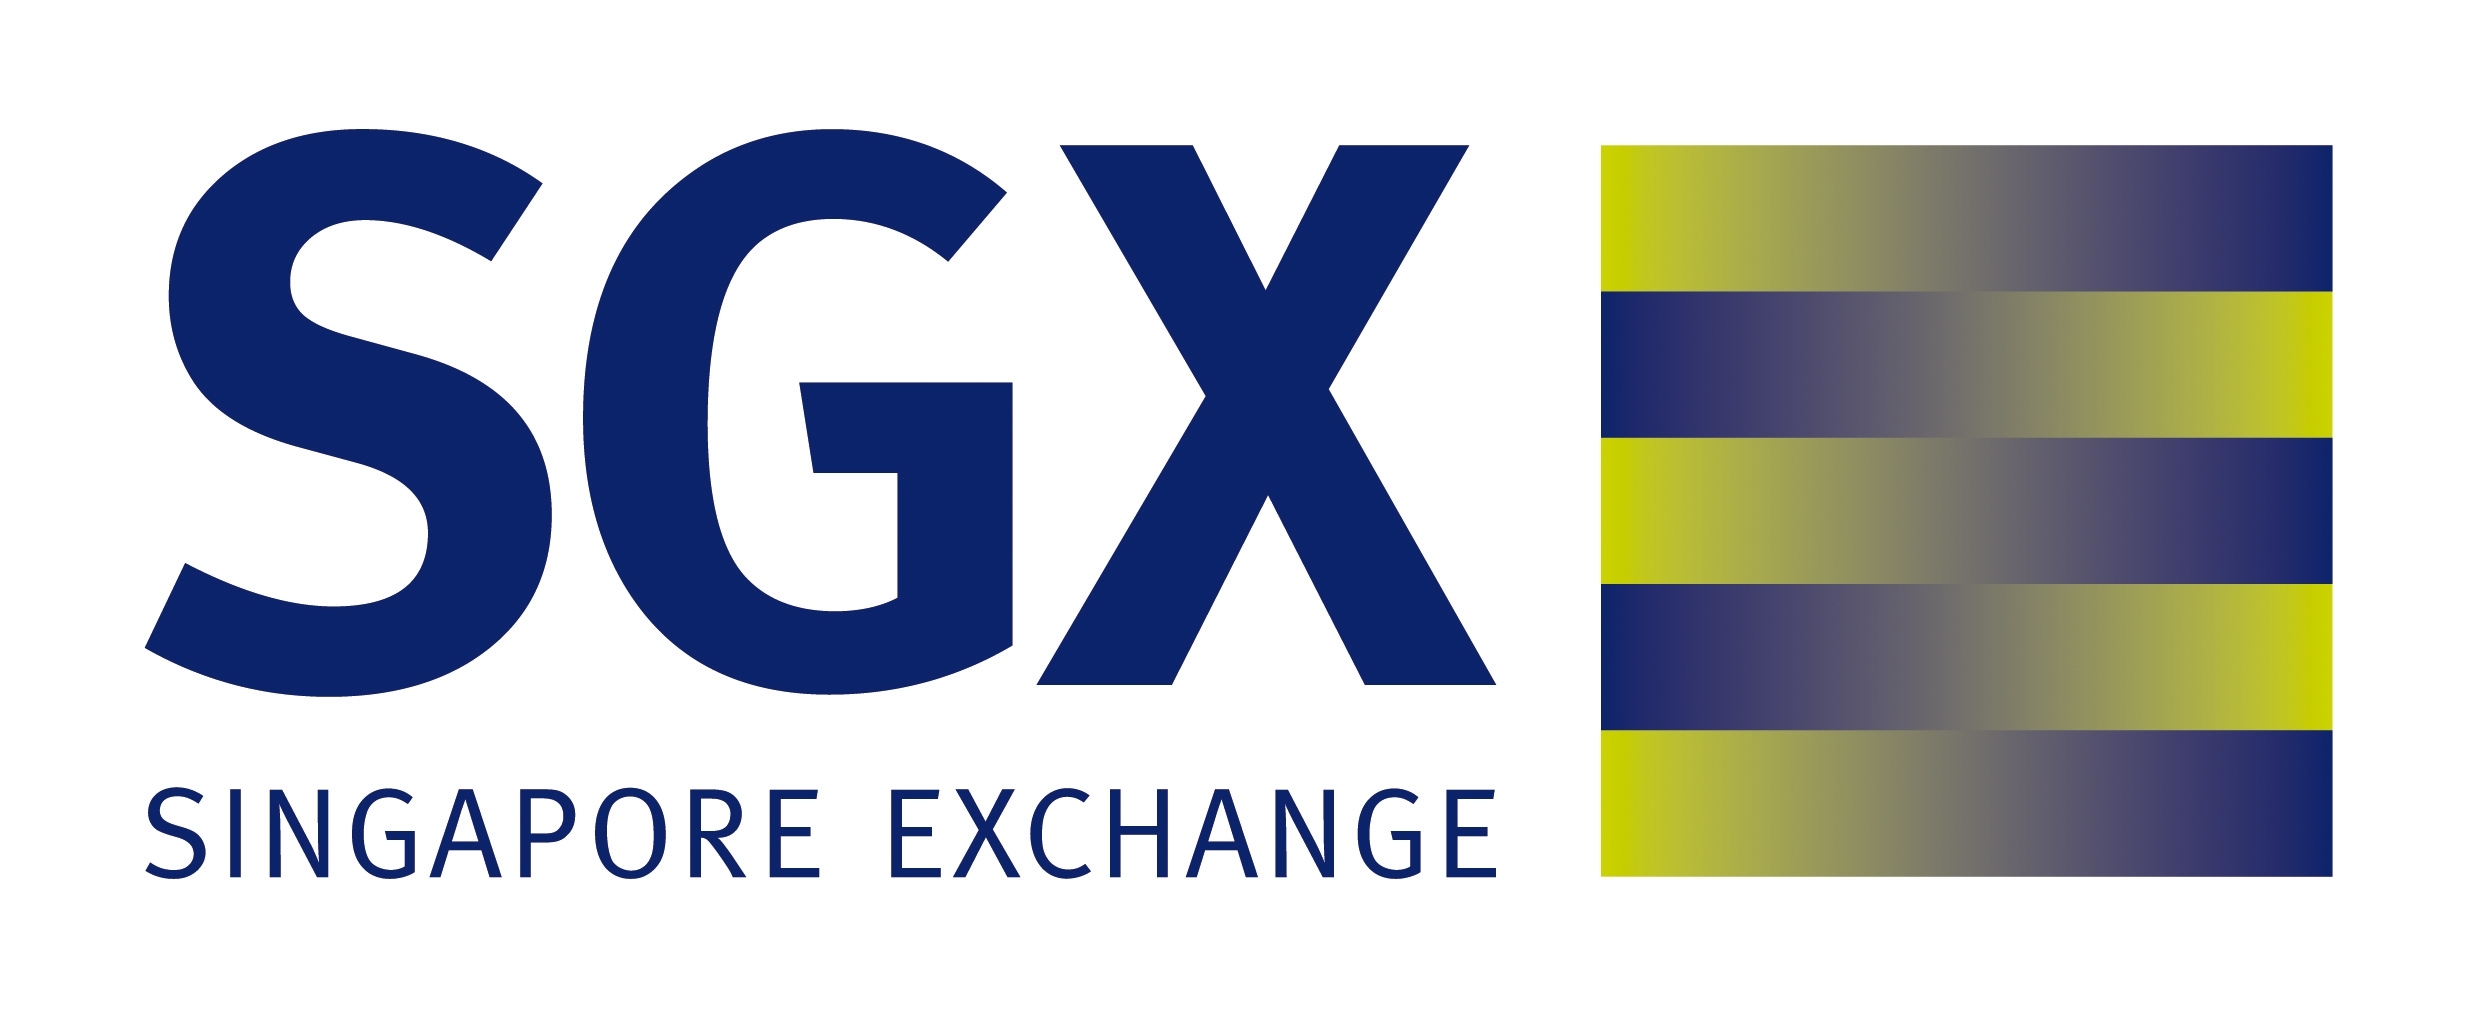 Singapore Exchange SGX.com